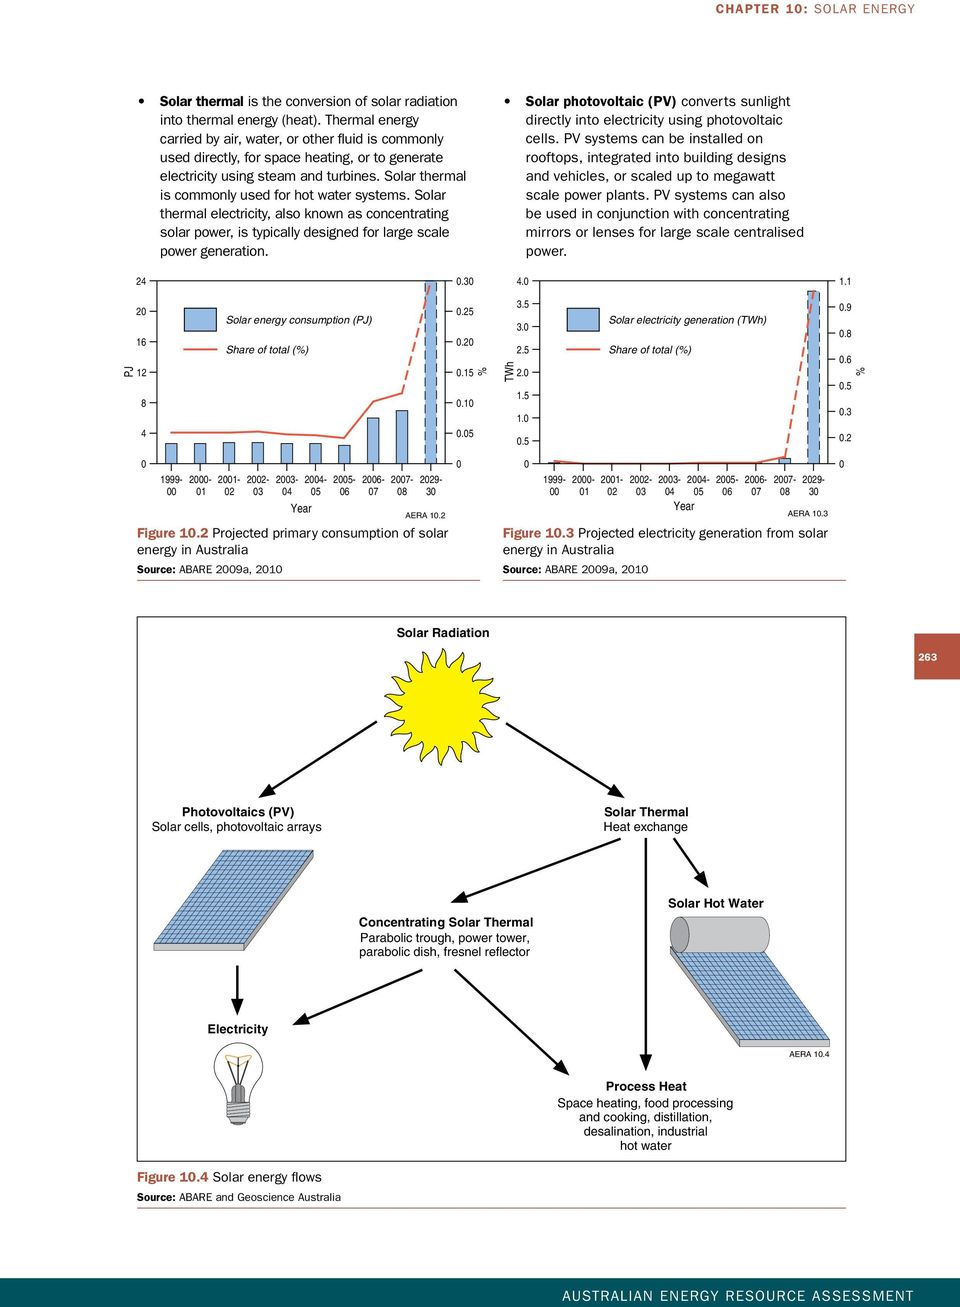 Solar thermal is commonly used for hot water systems. Solar thermal electricity, also known as concentrating solar power, is typically designed for large scale power generation.